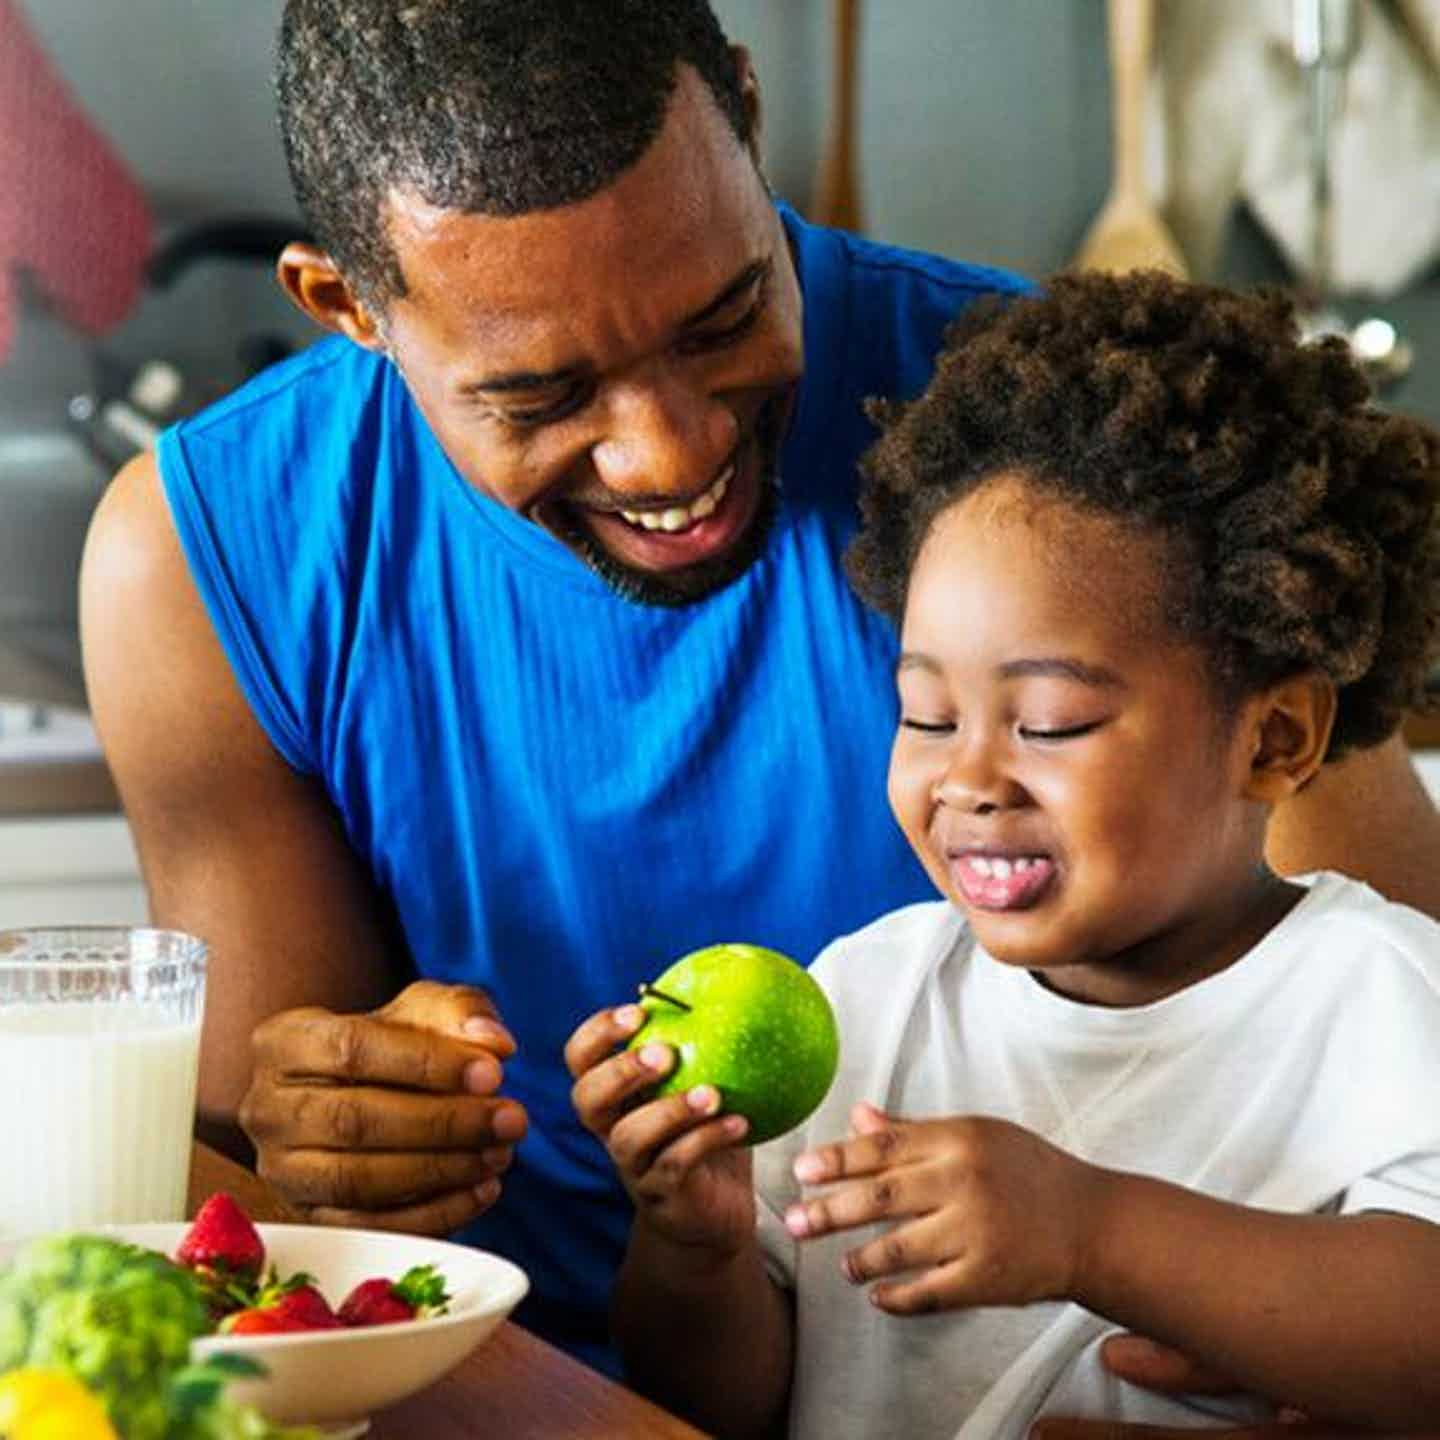 Dad and daughter eating fruit as part of healthy living